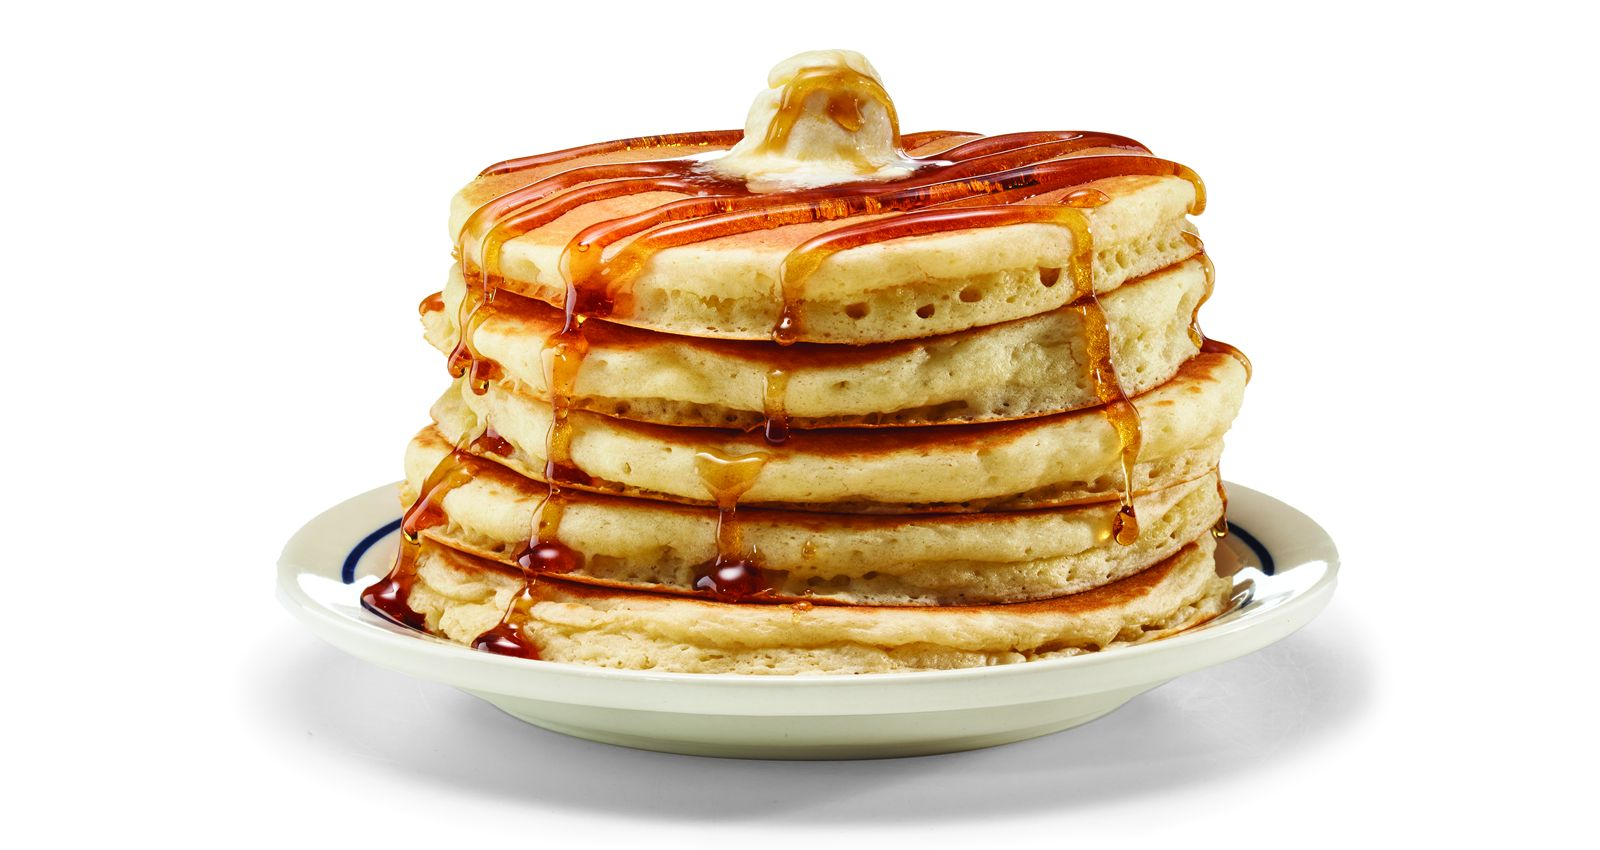 IHOP Continues Latin America Expansion with Three Restaurant Openings in Ecuador